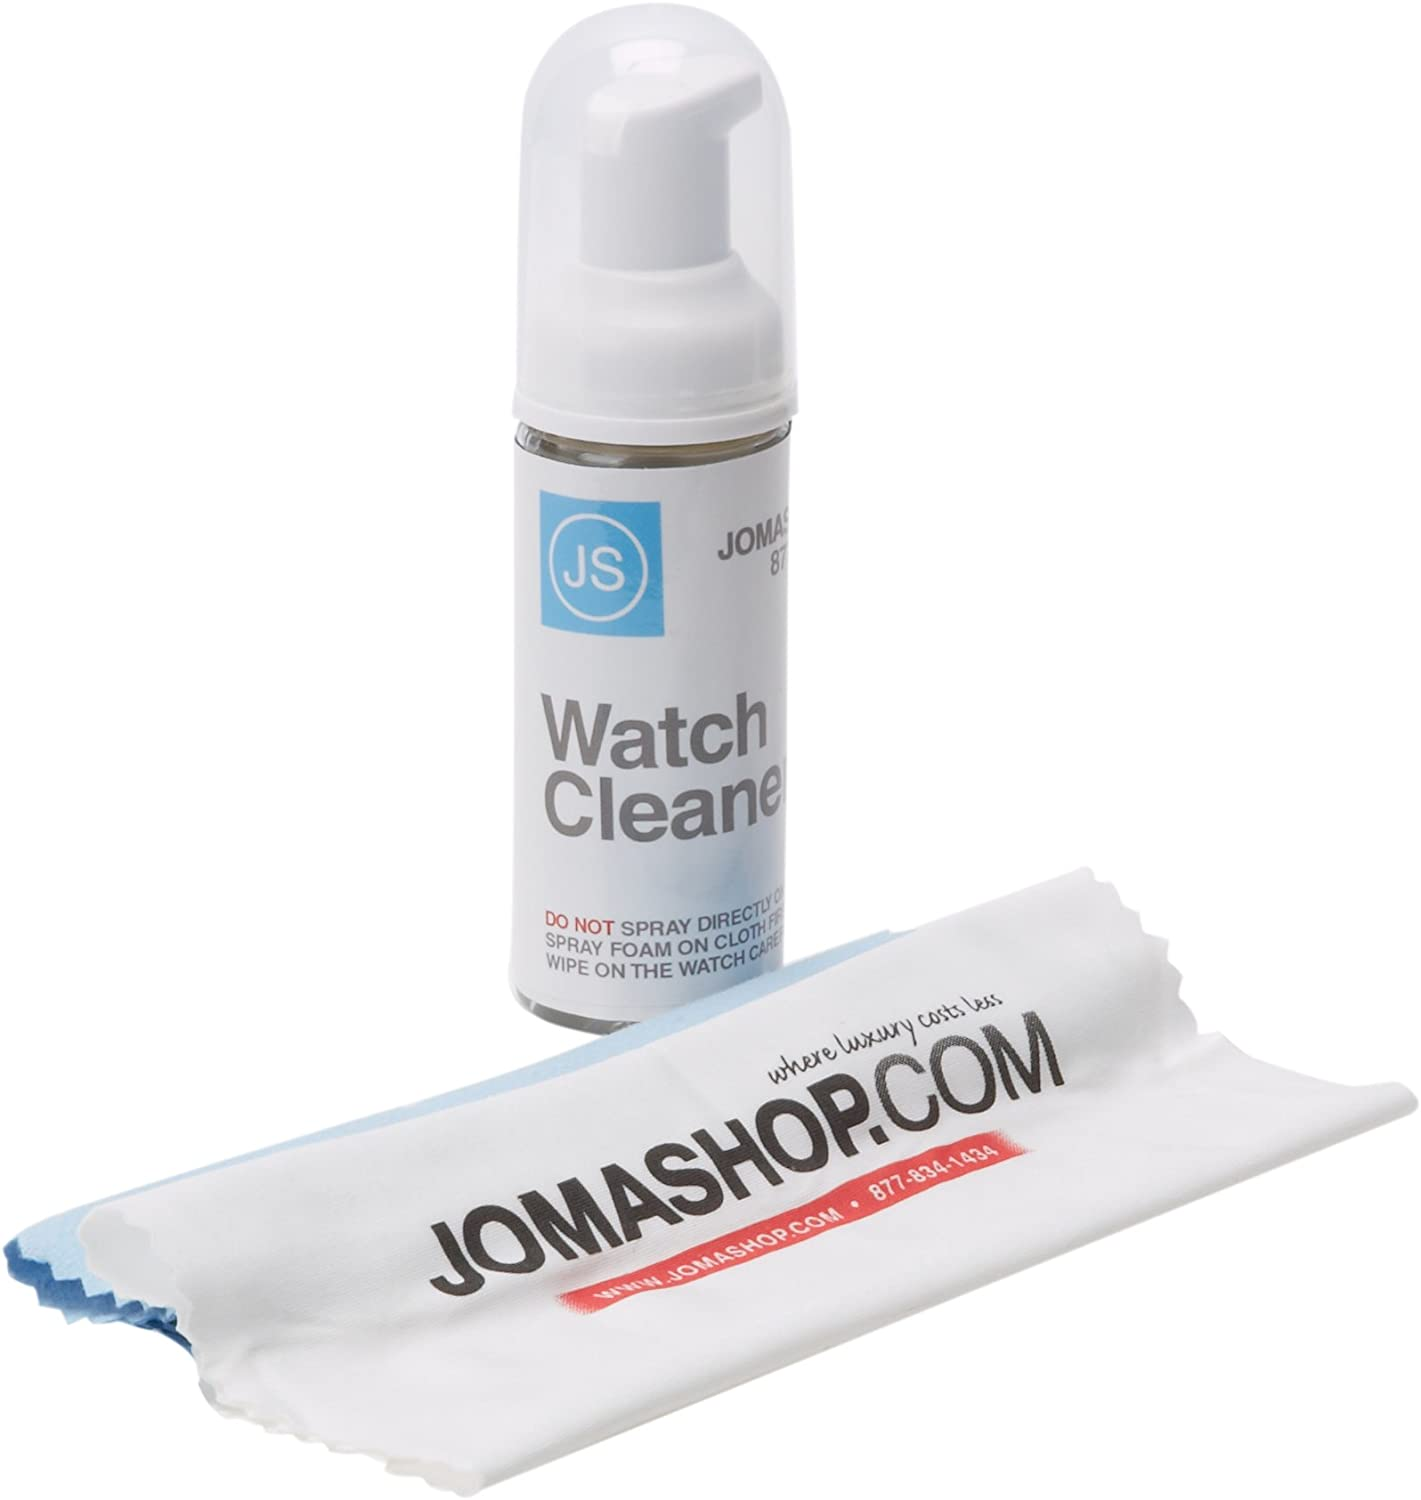 Watch Cleaning Kit BW0502274